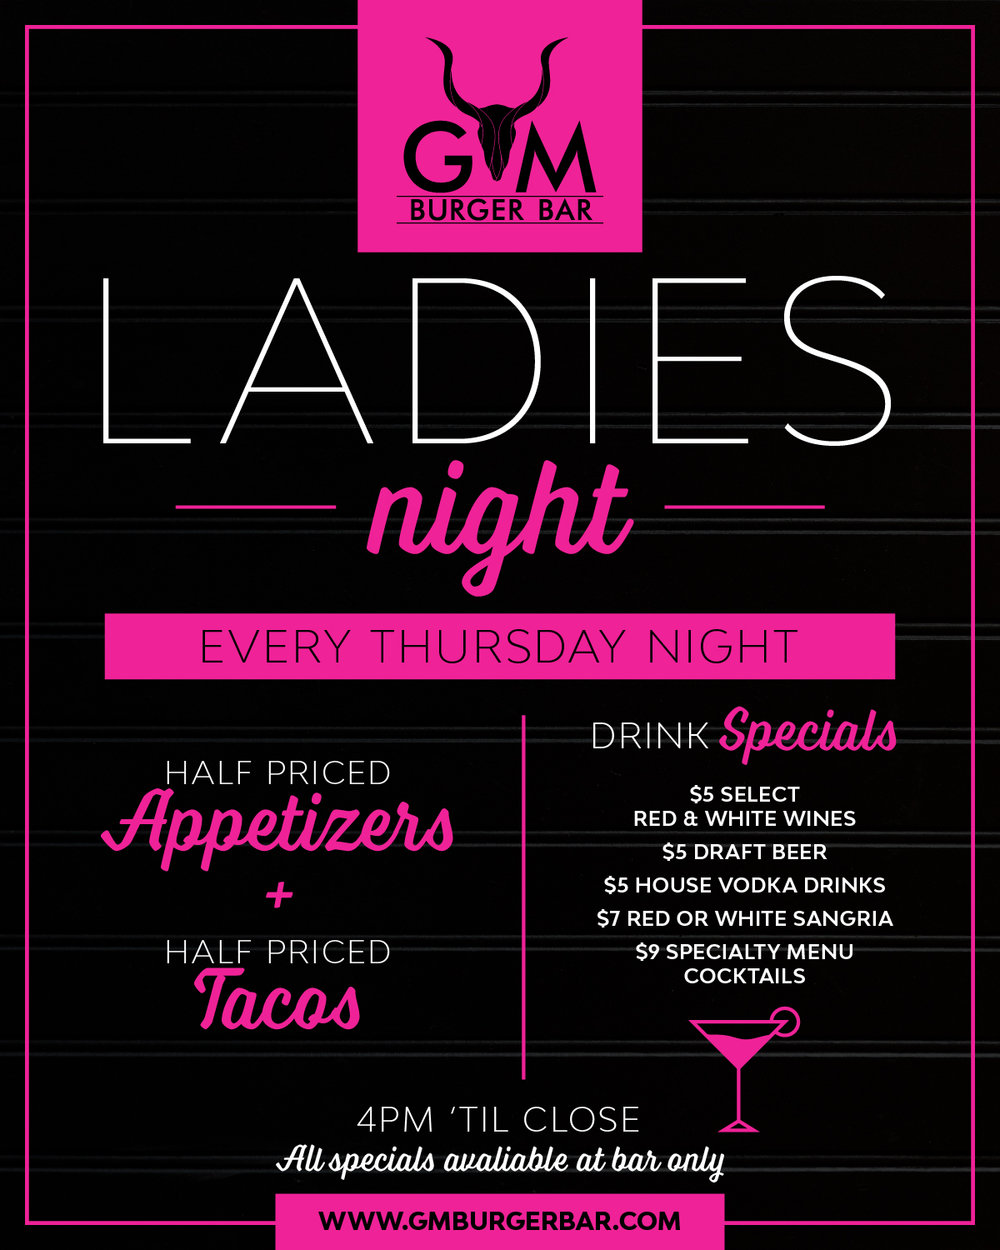 Flyer for Ladies Night, Thursday night half apps, half priced tacos, and drink specials